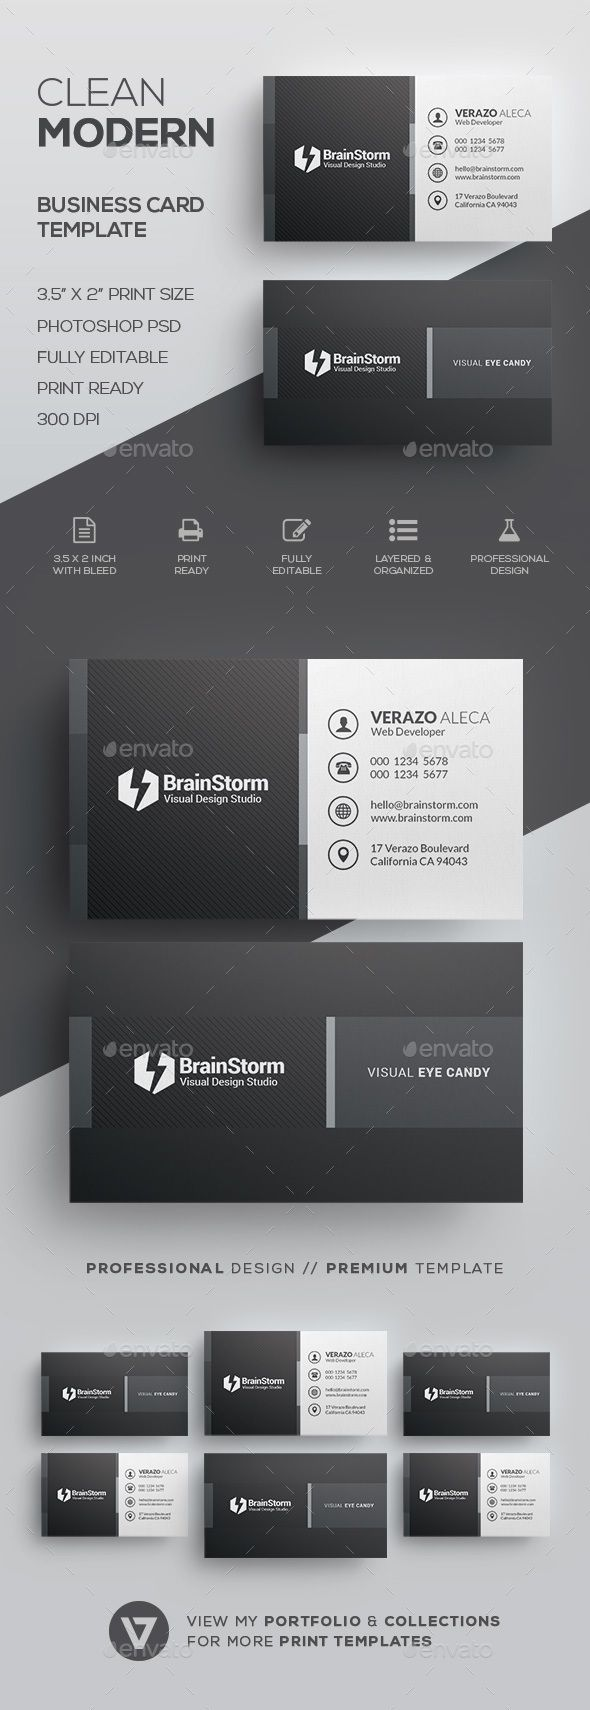 Clean Business Card Template by verazo Need more high quality business card? View my Business Card Templates Collection OR Save Money! Buy Business Card Bundle for only